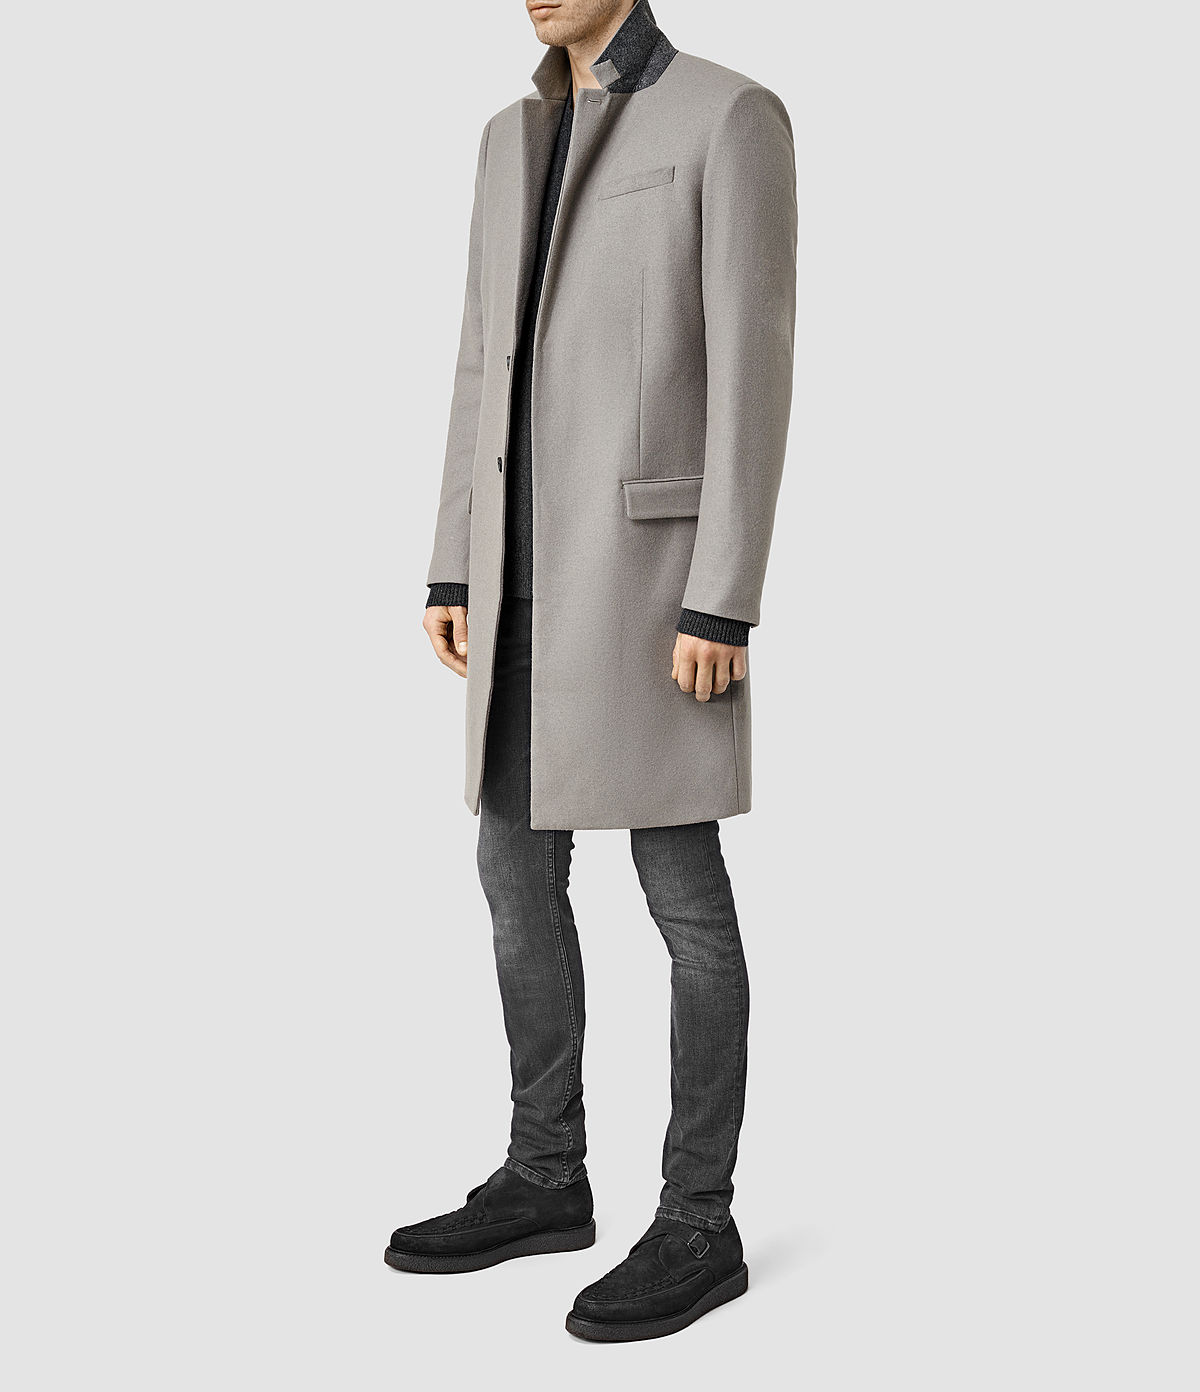 Grey Overcoat by Allsaints